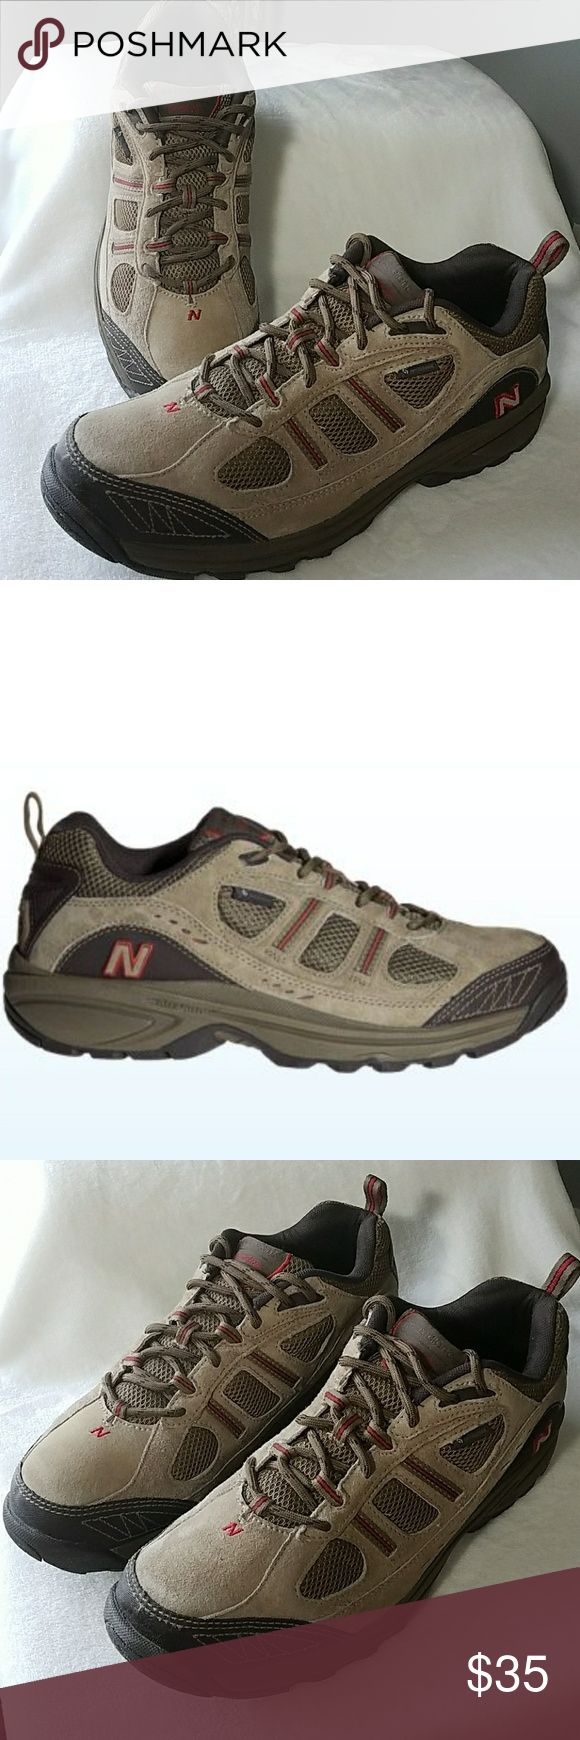 New Balance MW646BR Hiking Shoe Men's New Balance MW646BR Hiking Shoe. Outdoor adventurers and enthusiasts like the men's New Balance MW646BR for its stability web and ABZORB® cushioning, which provides you the comfort and support you need on longer walks. A fashionable and water-resistant suede and mesh upper helps keep you dry and looking good.C-CAP® midsole provides cushioning and support. Worn a few times. EUC Size 12 D (Medium) New Balance Shoes Sneakers